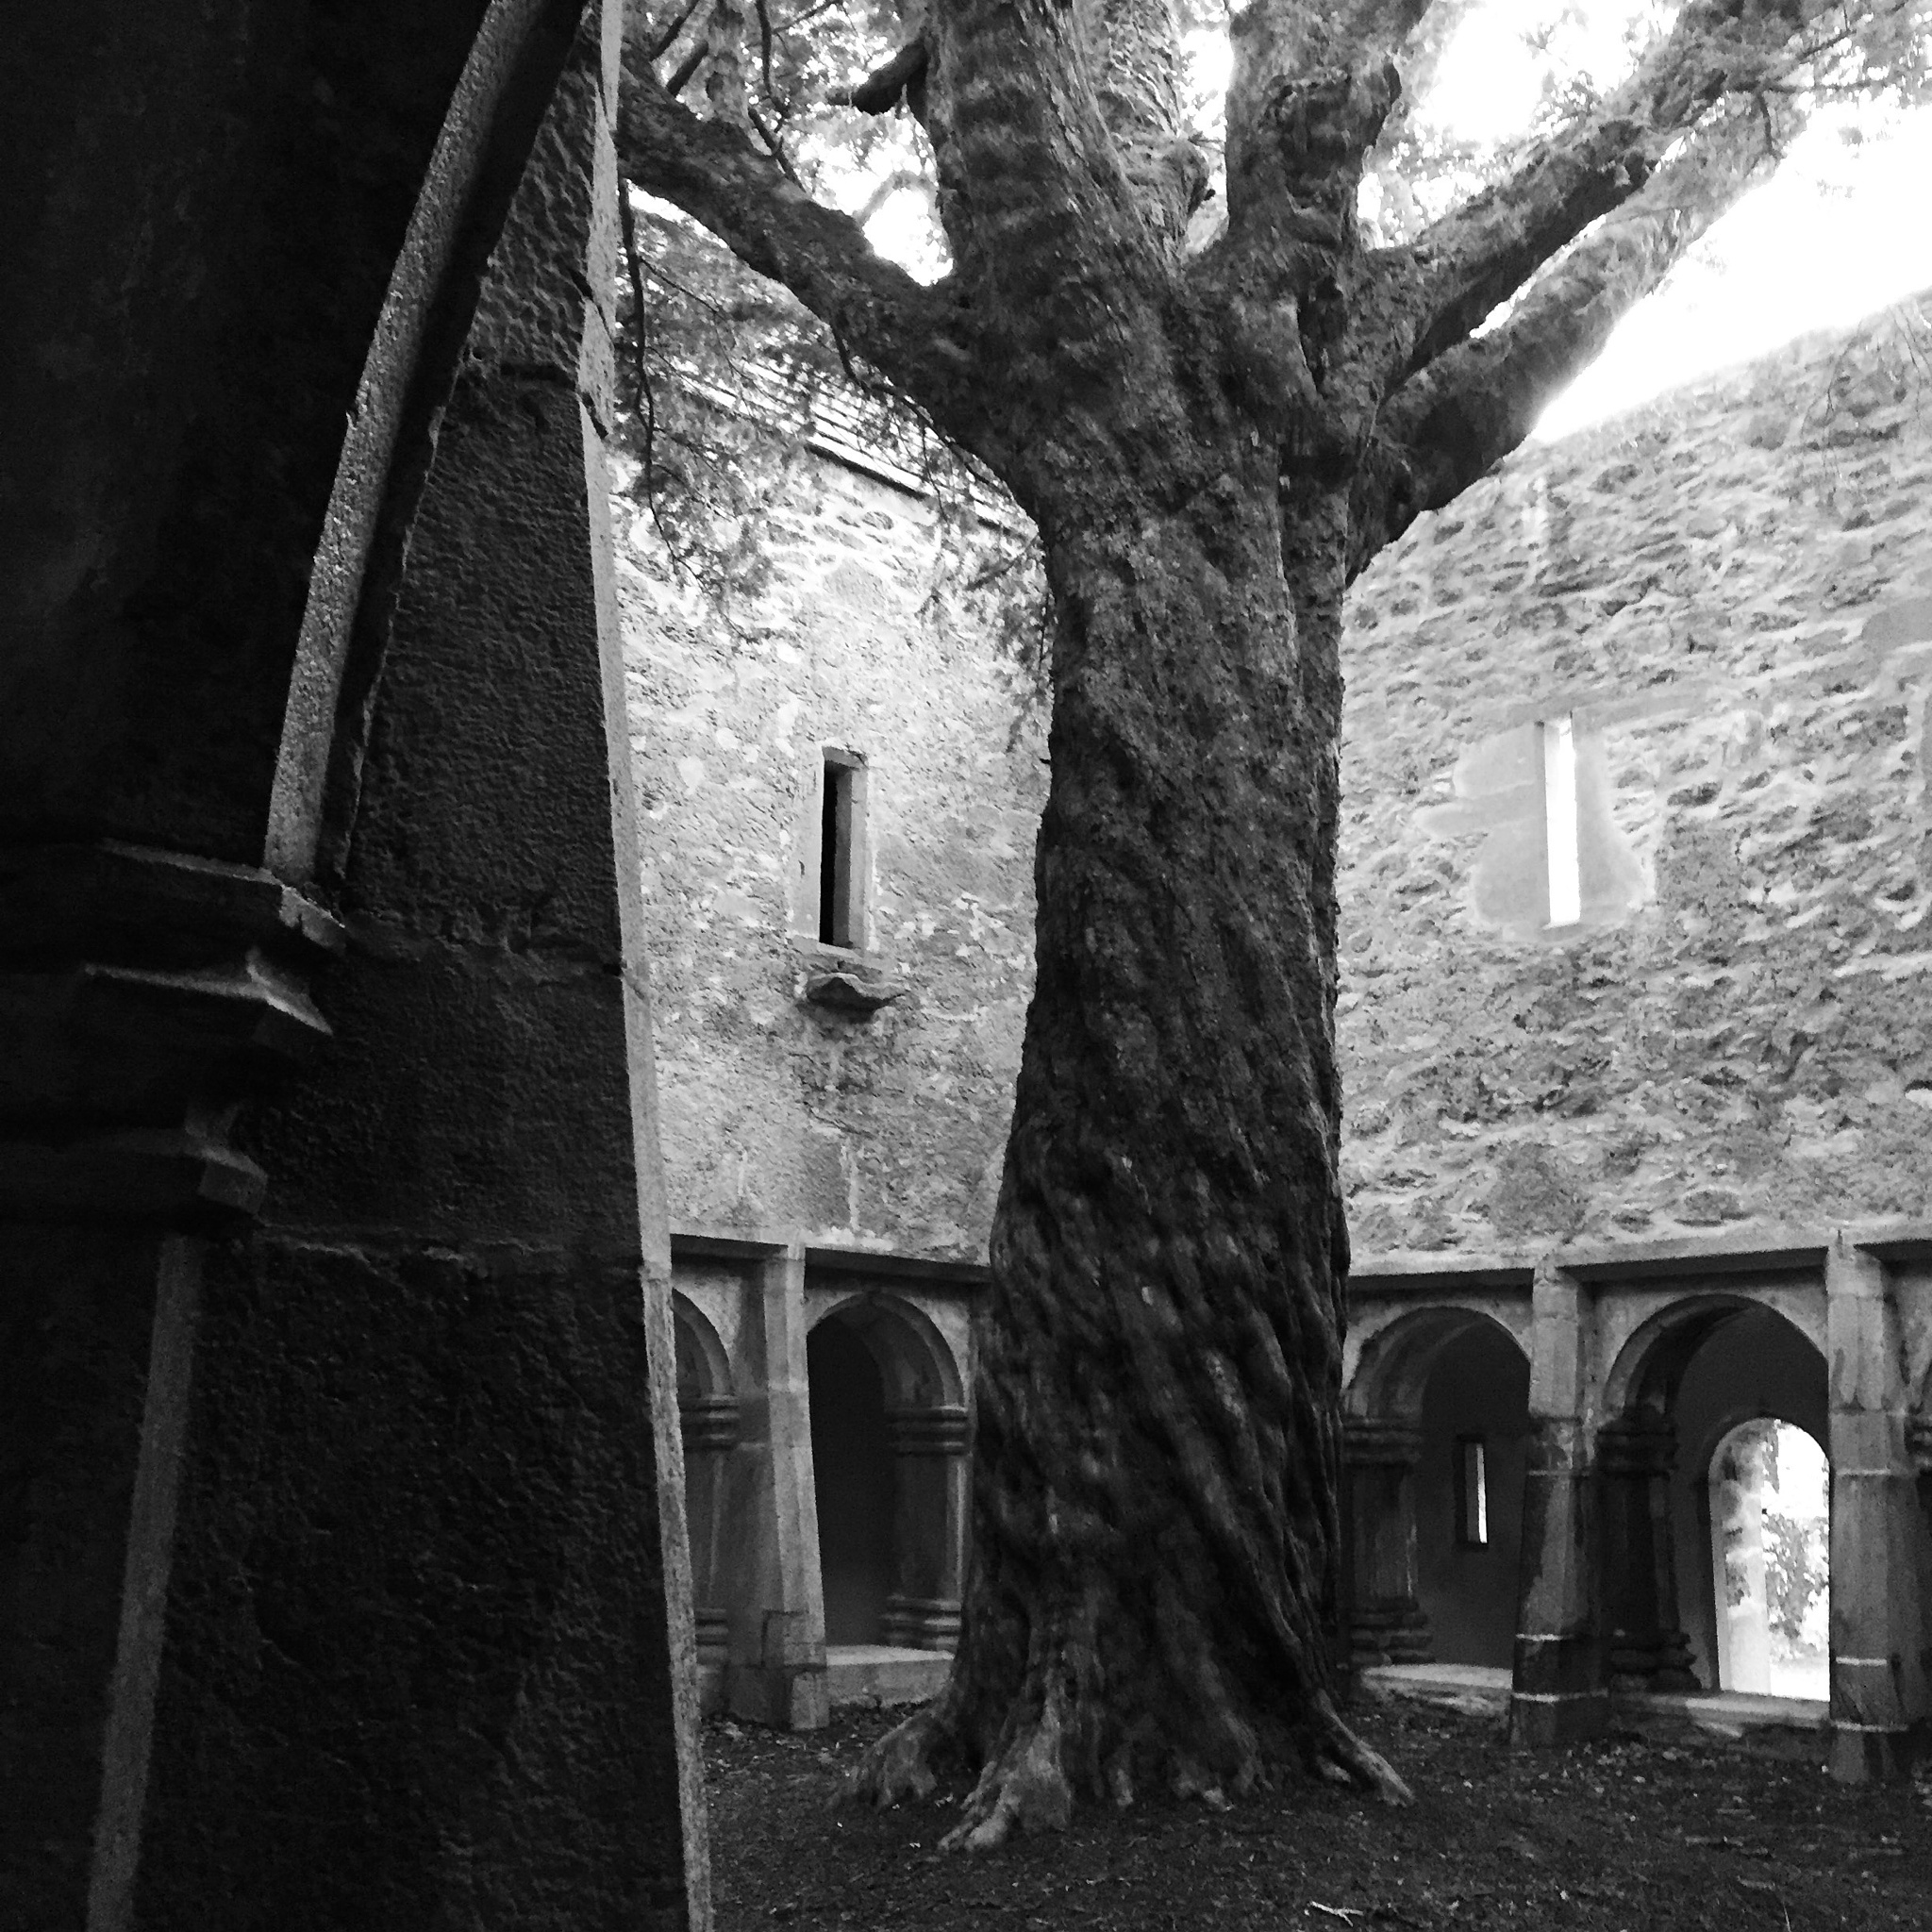 Cloisters by Nick Woodards